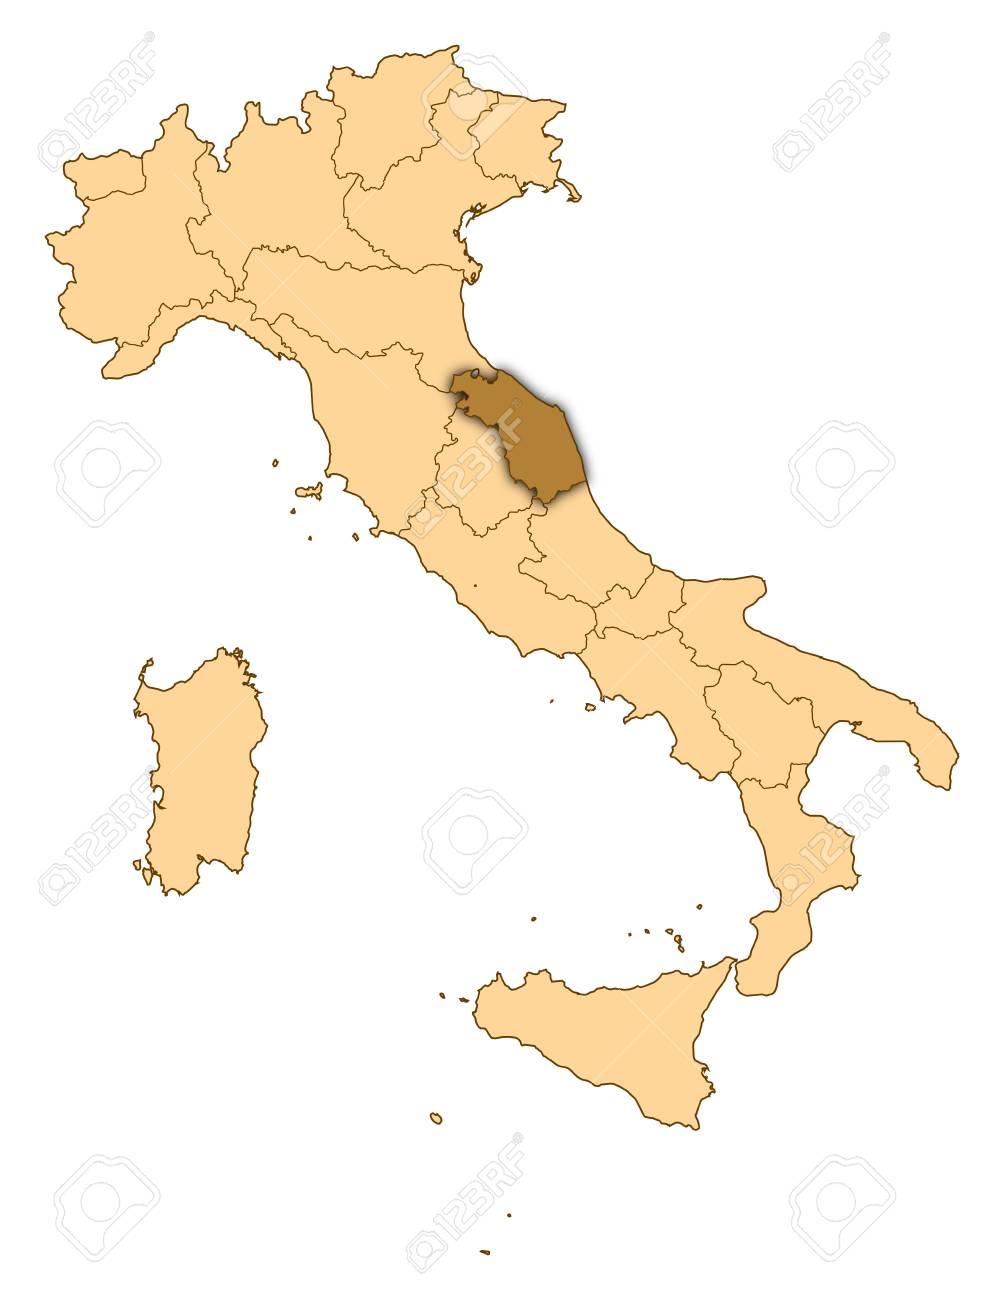 Marche Cartina Italia.Map Of Italy Where Marche Is Highlighted Stock Photo Picture And Royalty Free Image Image 14415056